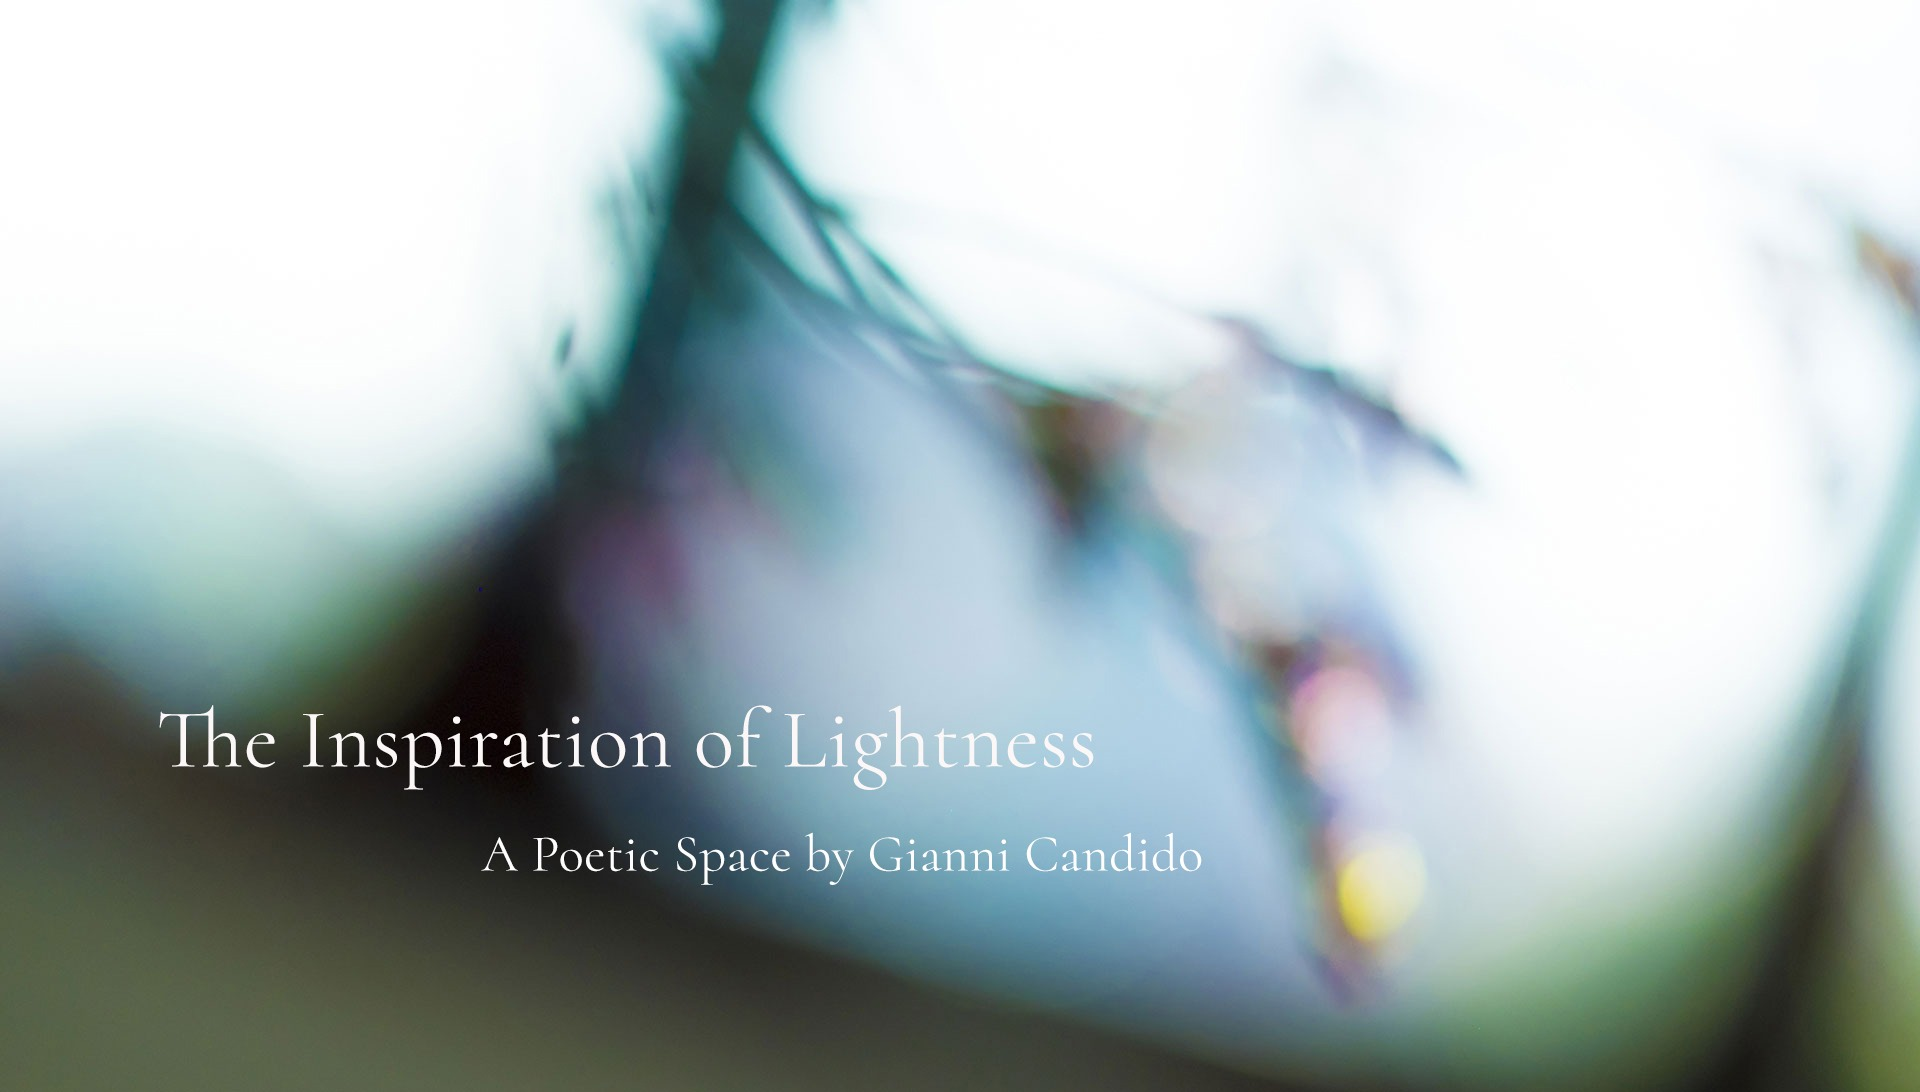 The Inspiration of Lightness - A Poetic Space by Gianni Candido